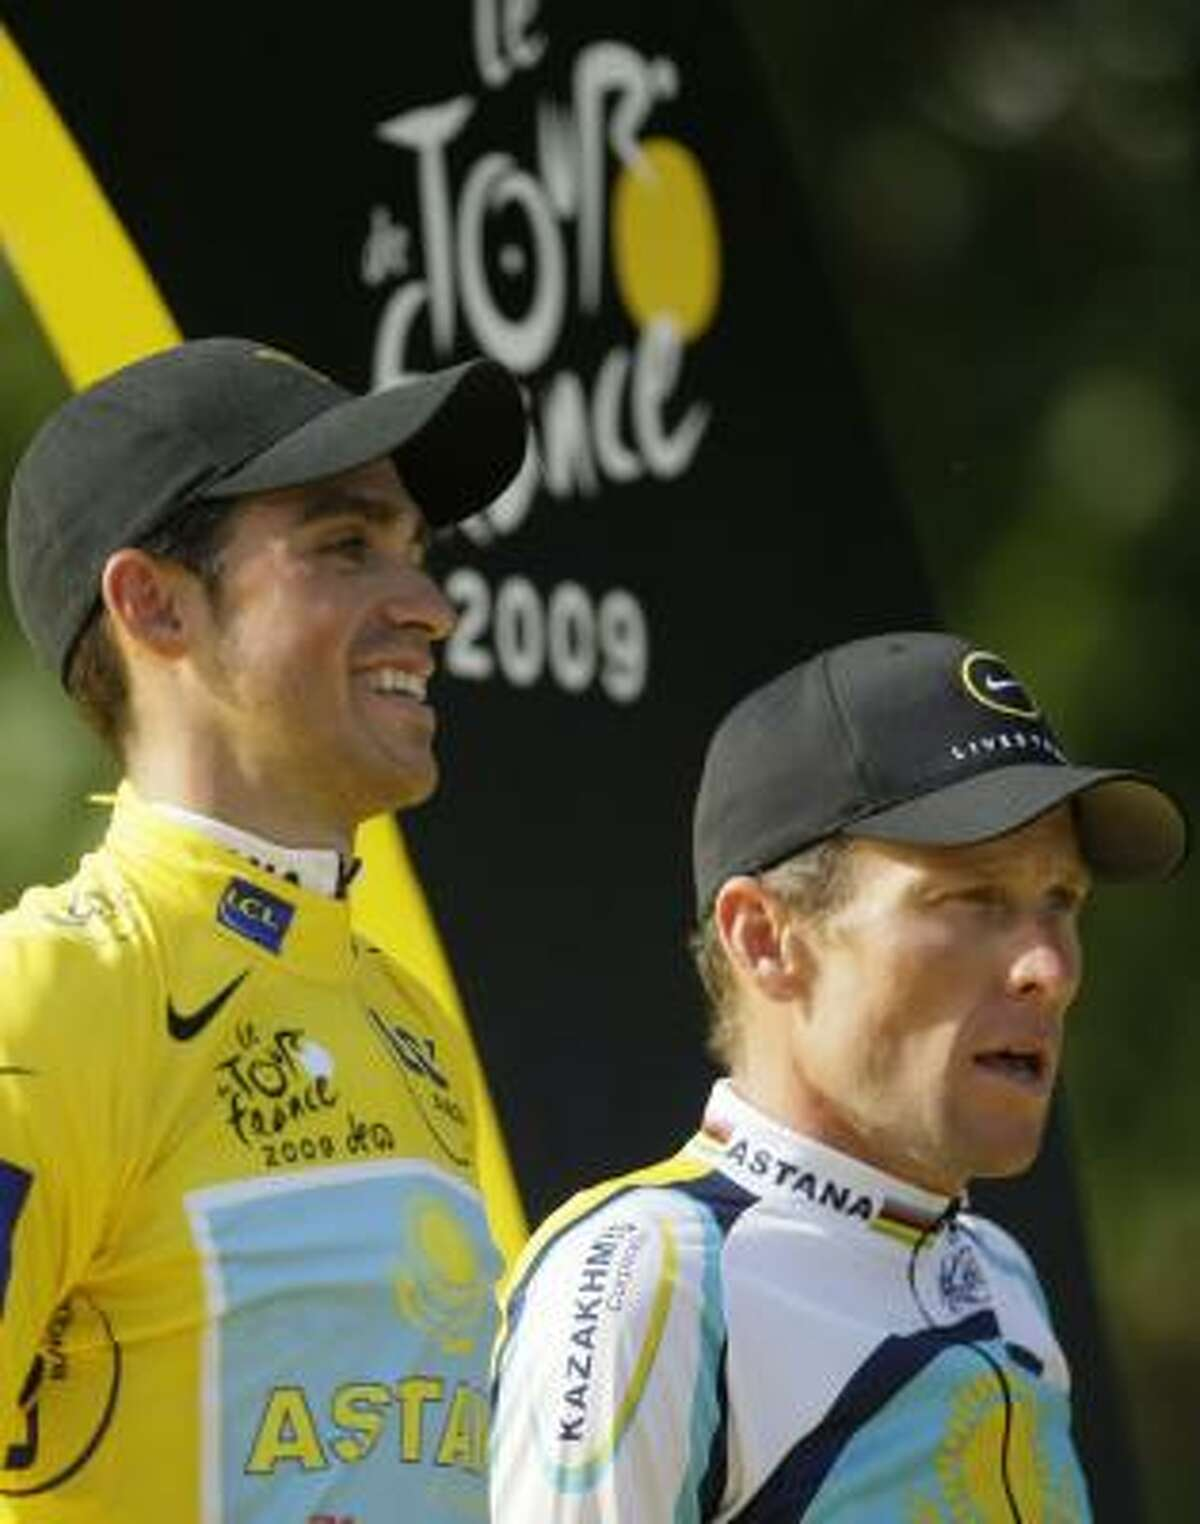 Perhaps a round of beers could bring Tour de France winner Alberto Contador of Spain and third-placed, seven-time Tour de France winner Lance Armstrong to speaking terms.